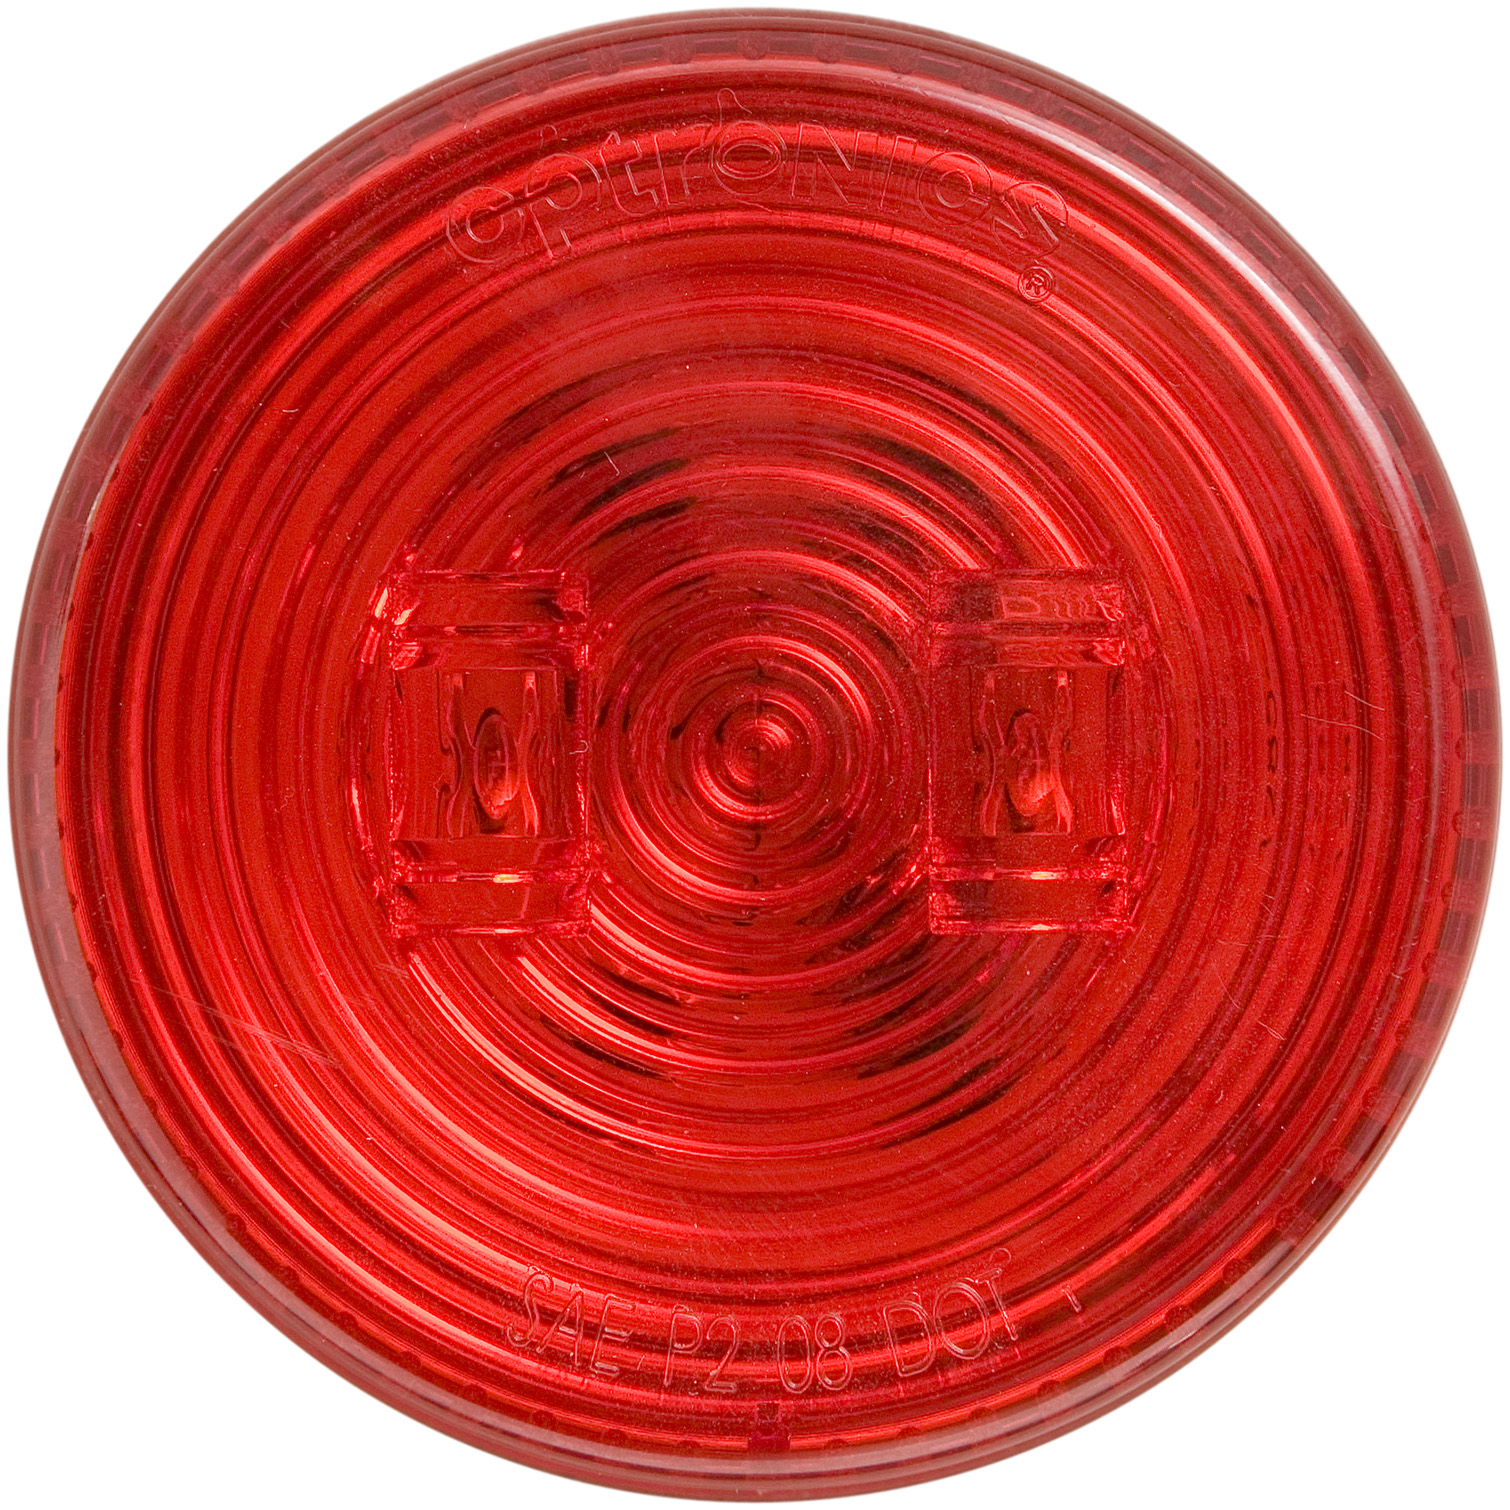 MCL527RB_OPTRONICS MCL 527RB Marker Clearance Light for Grommet Mount